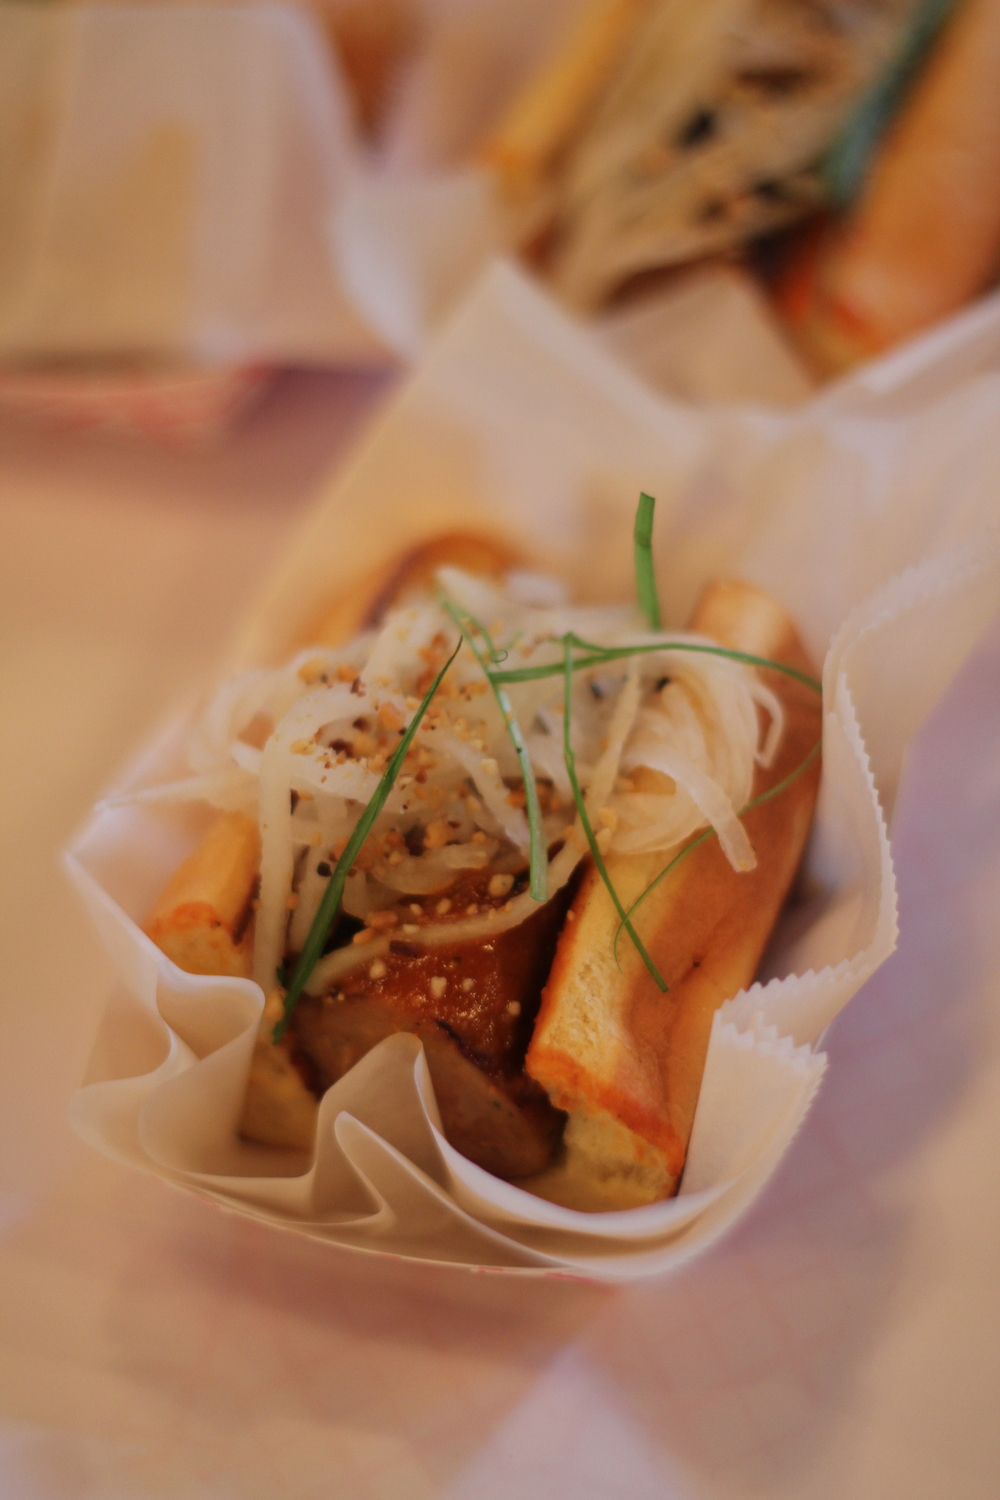 The 'Far East' dog by New York Dog House www.newyorkdoghouse.com